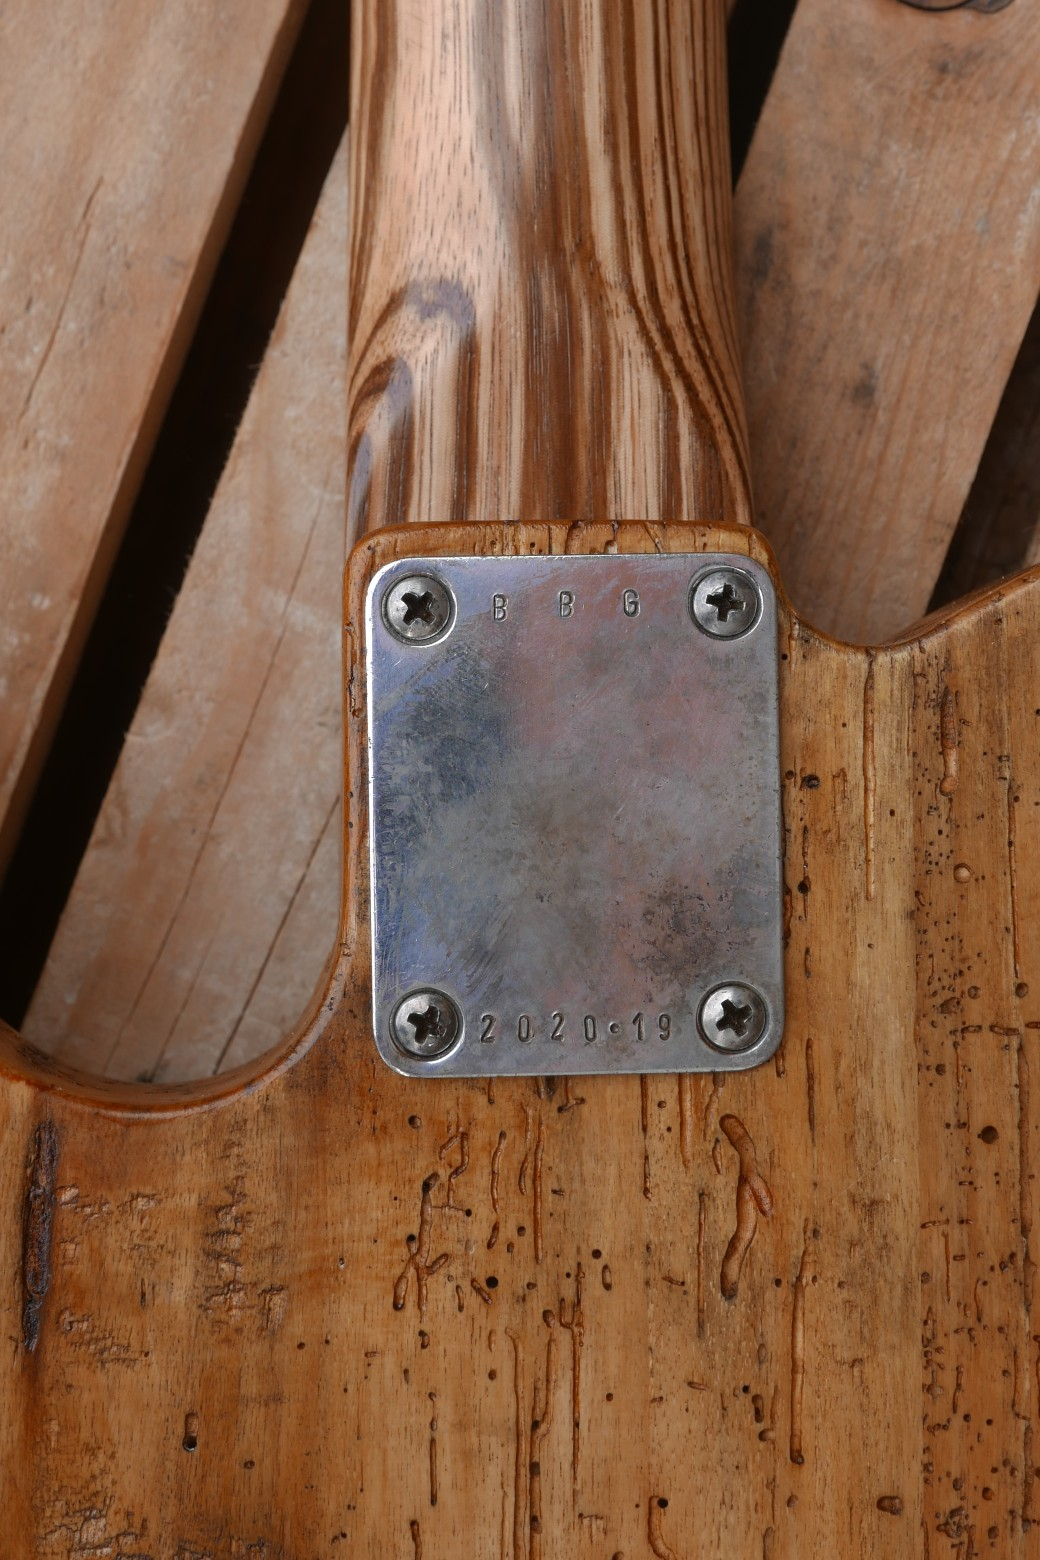 telecaster placca seriale